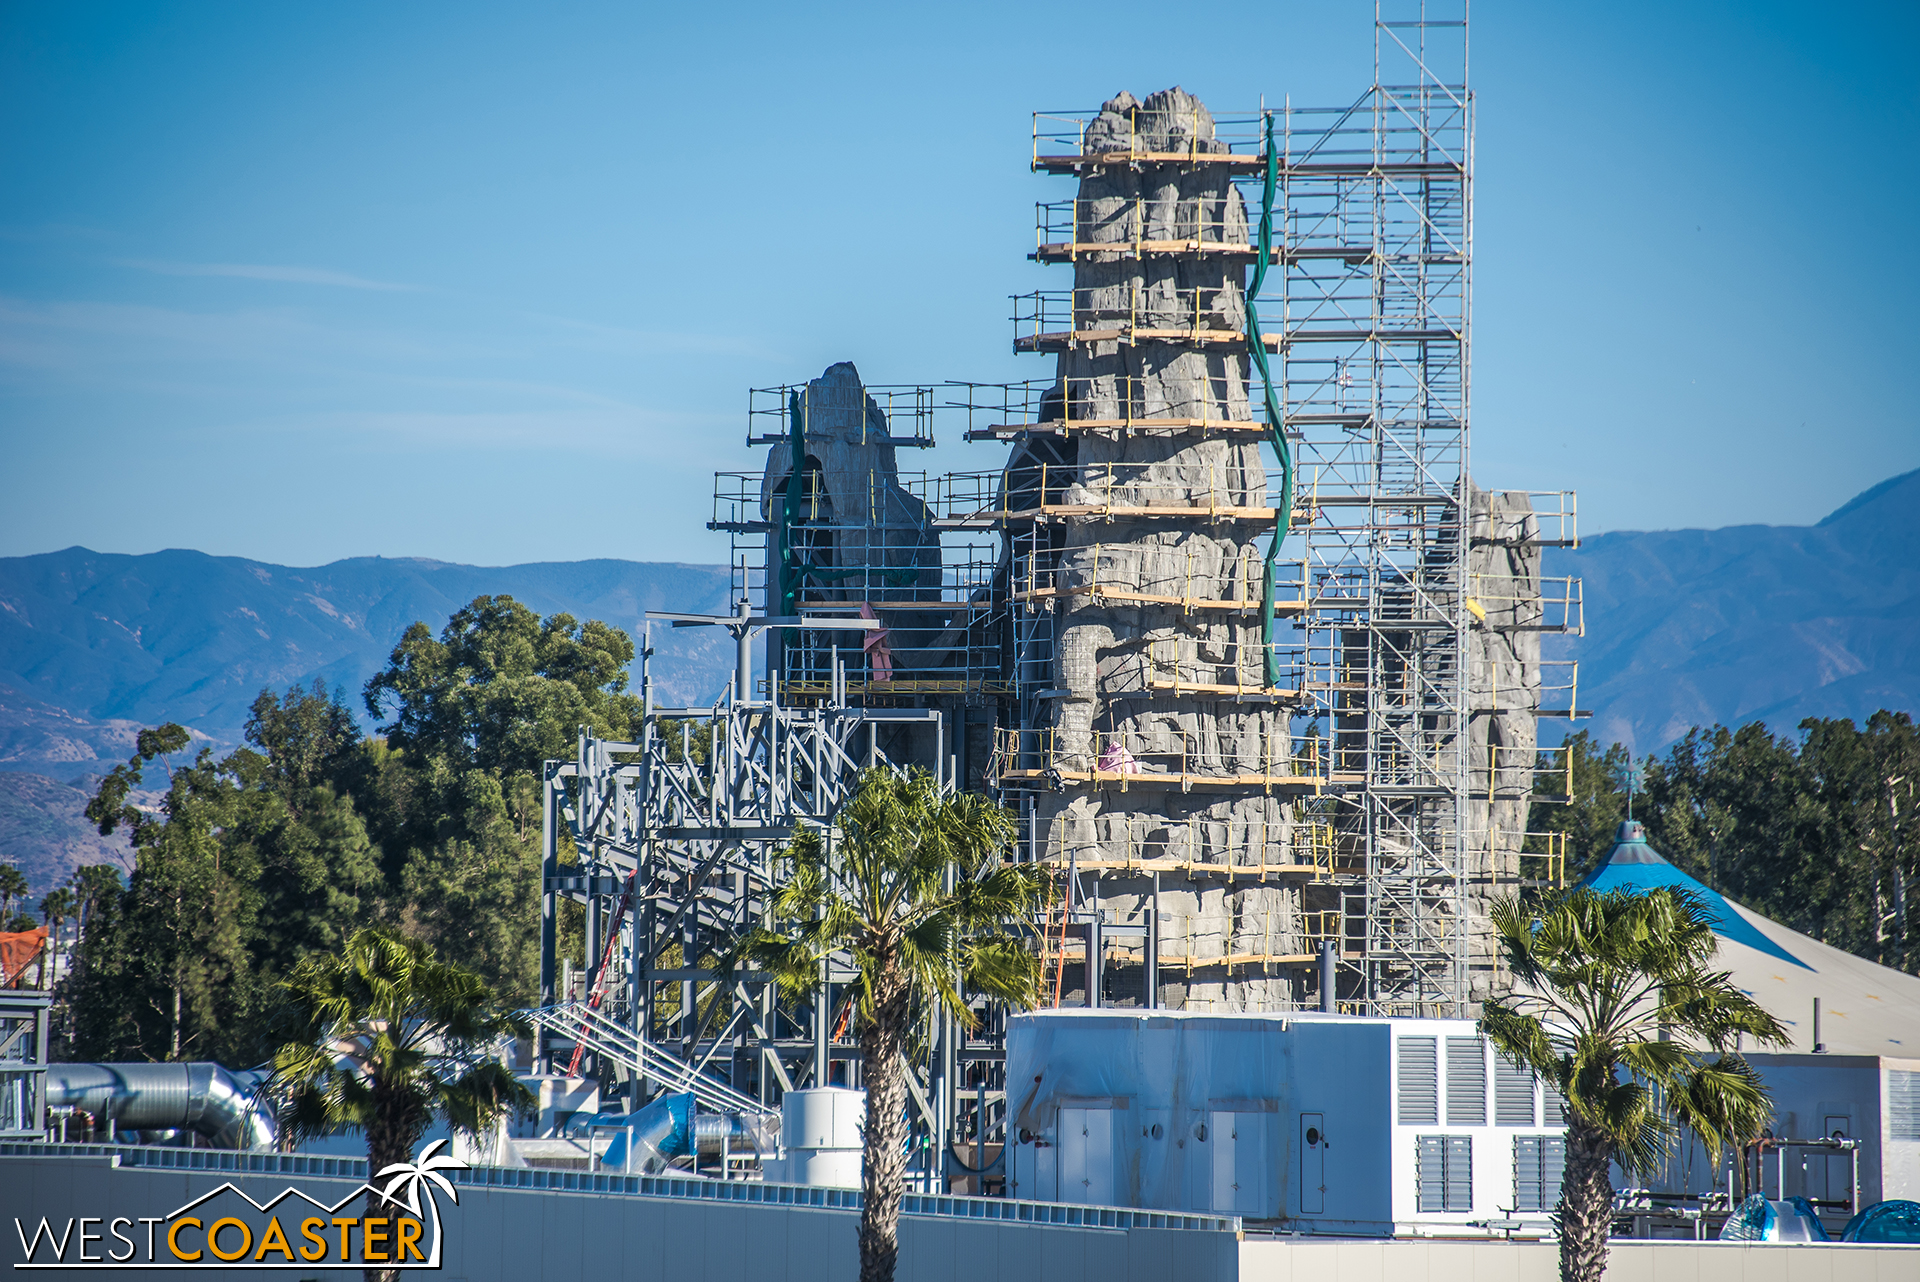 The progress looks great, though I'm a bit concerned that Disney will pull an Everest and not completely finish the rock on the back of house side, even though people driving down Disneyland Drive will totally see exposed structure.